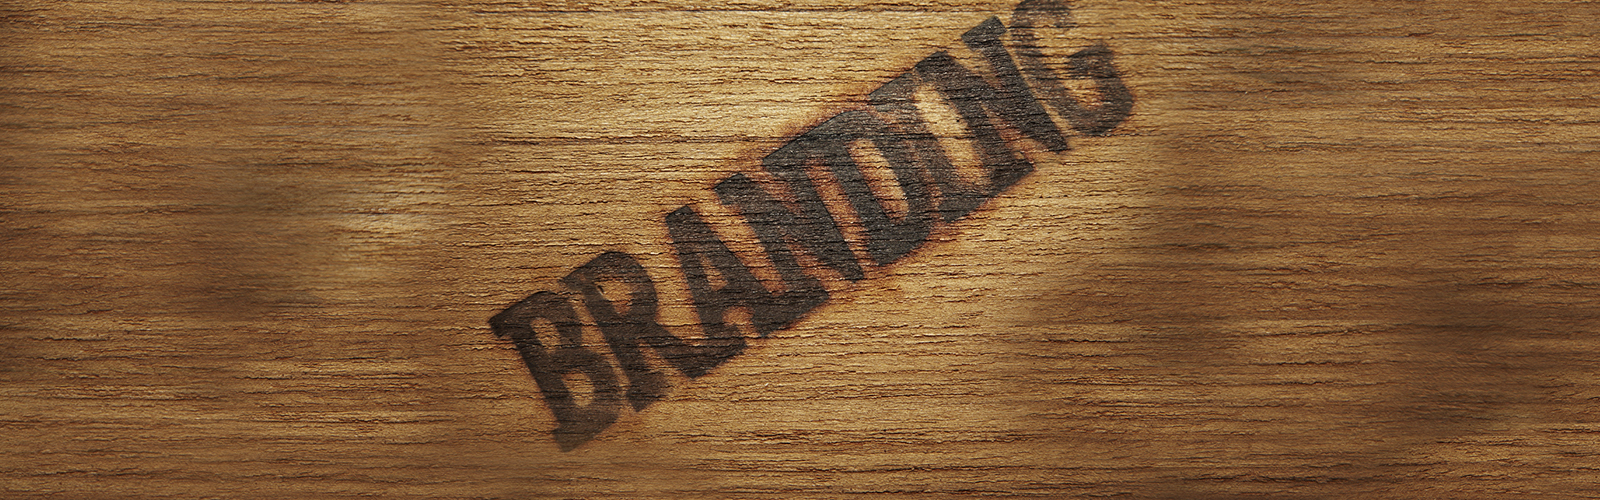 Branding in a connected world